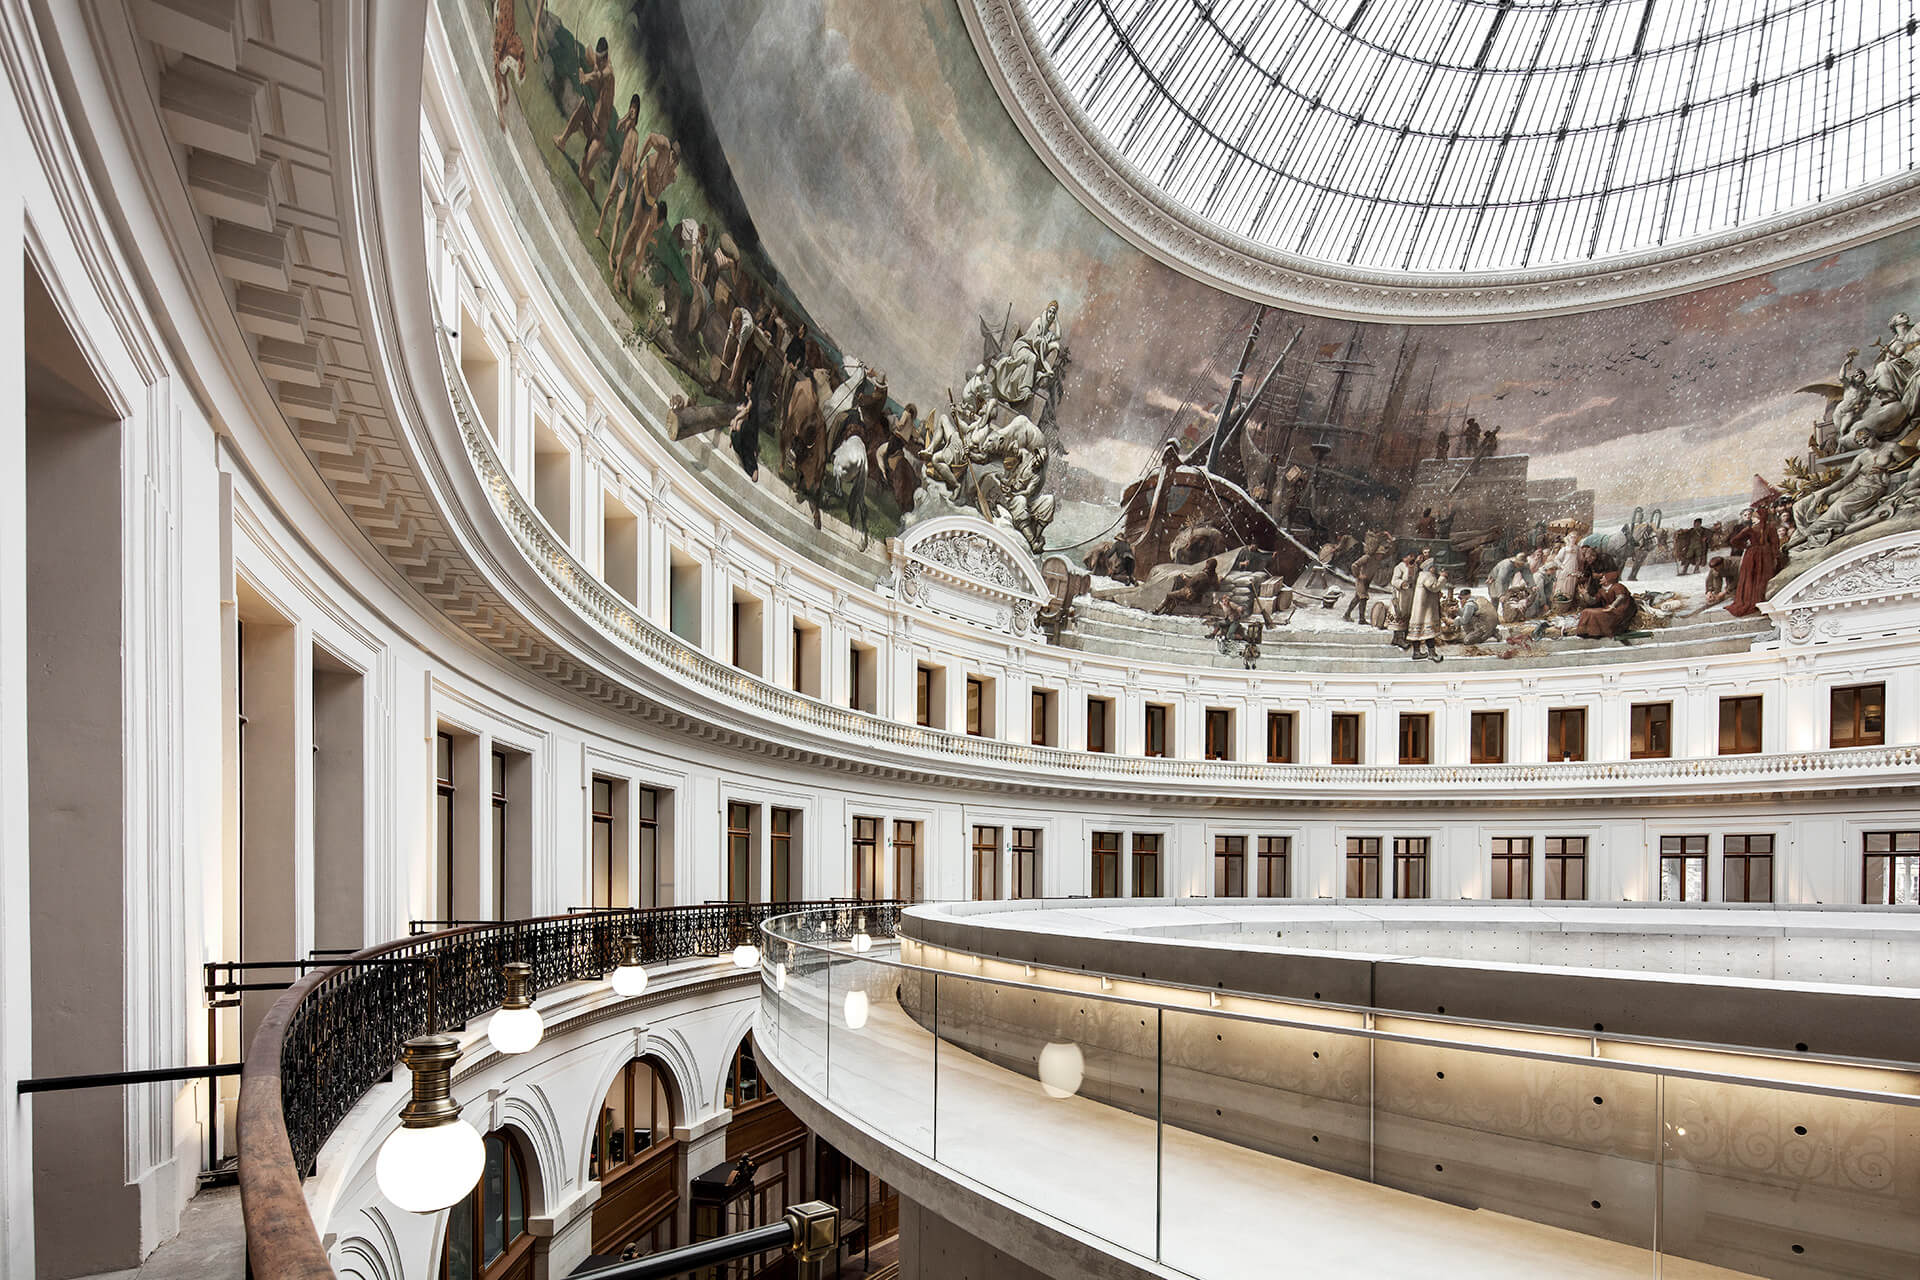 The fresco at the base of the cupola of Bourse de Commerce depicting French trade across the continents | Bourse De Commerce – Pinault Collection | Tadao Ando Architect & Associates, Niney and Marca Architects, and Agence Pierre-Antoine Gatier | STIRworld